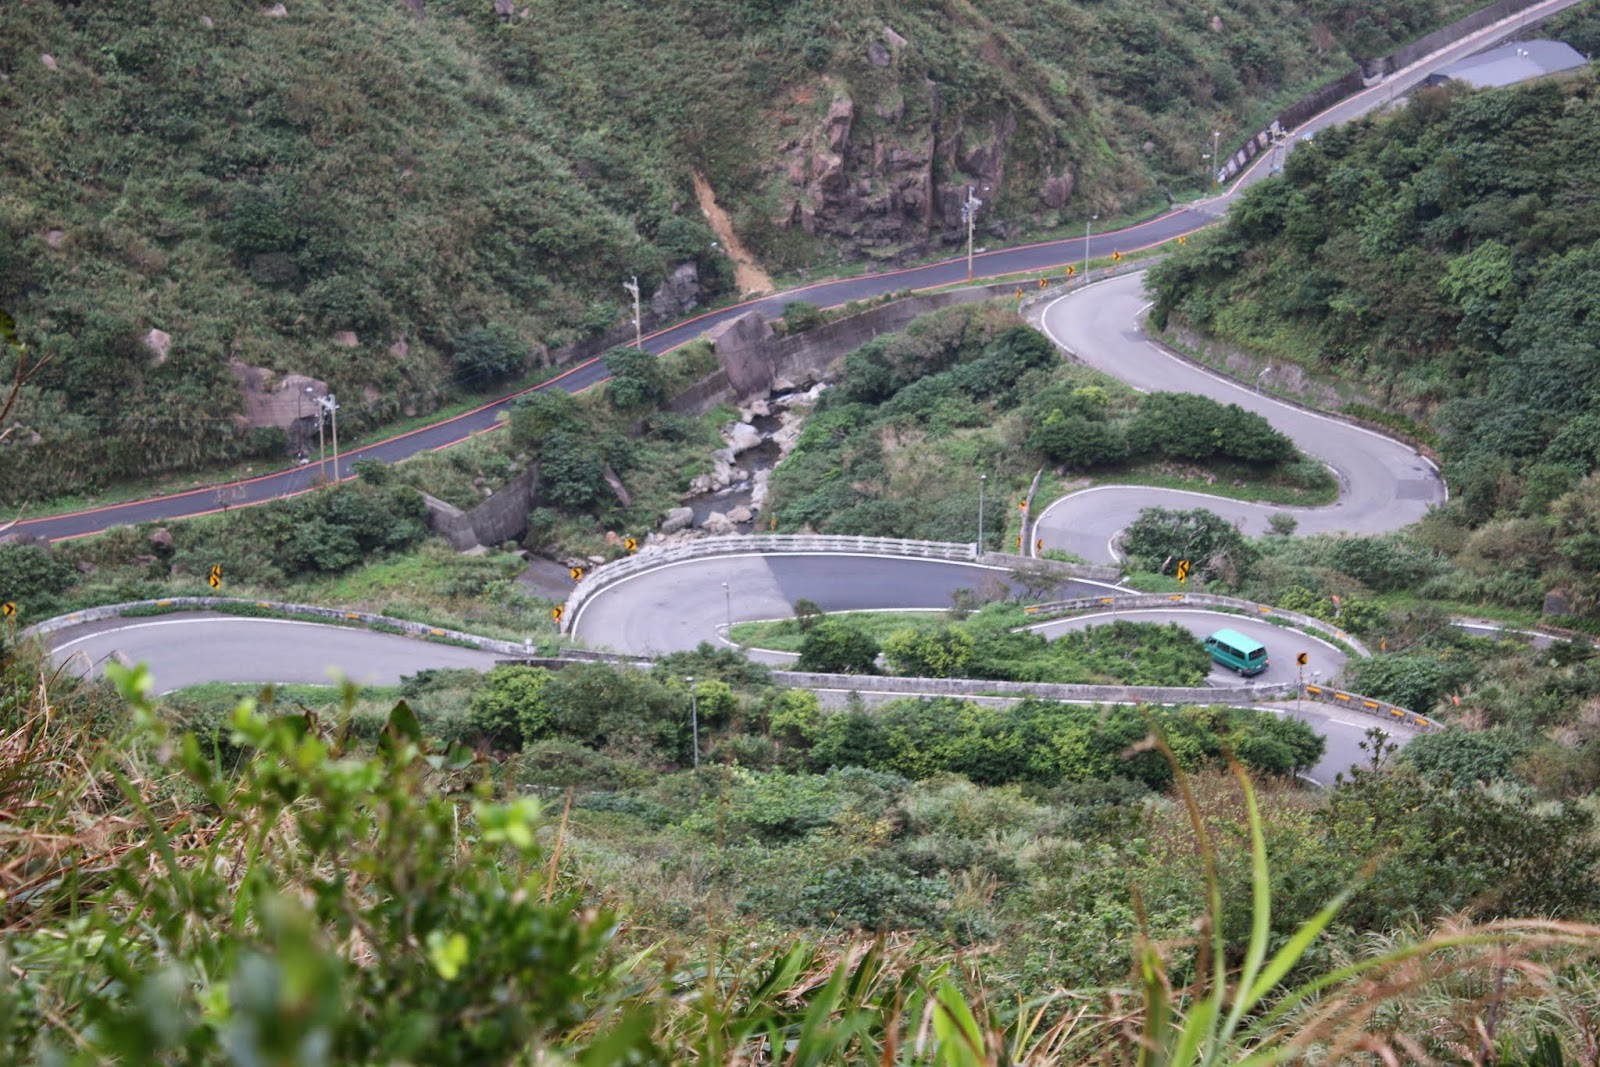 The best spot for admiring Chin-Shui Highway 「meandering winding」 attractions at Jingming Pavilion in Taiwan